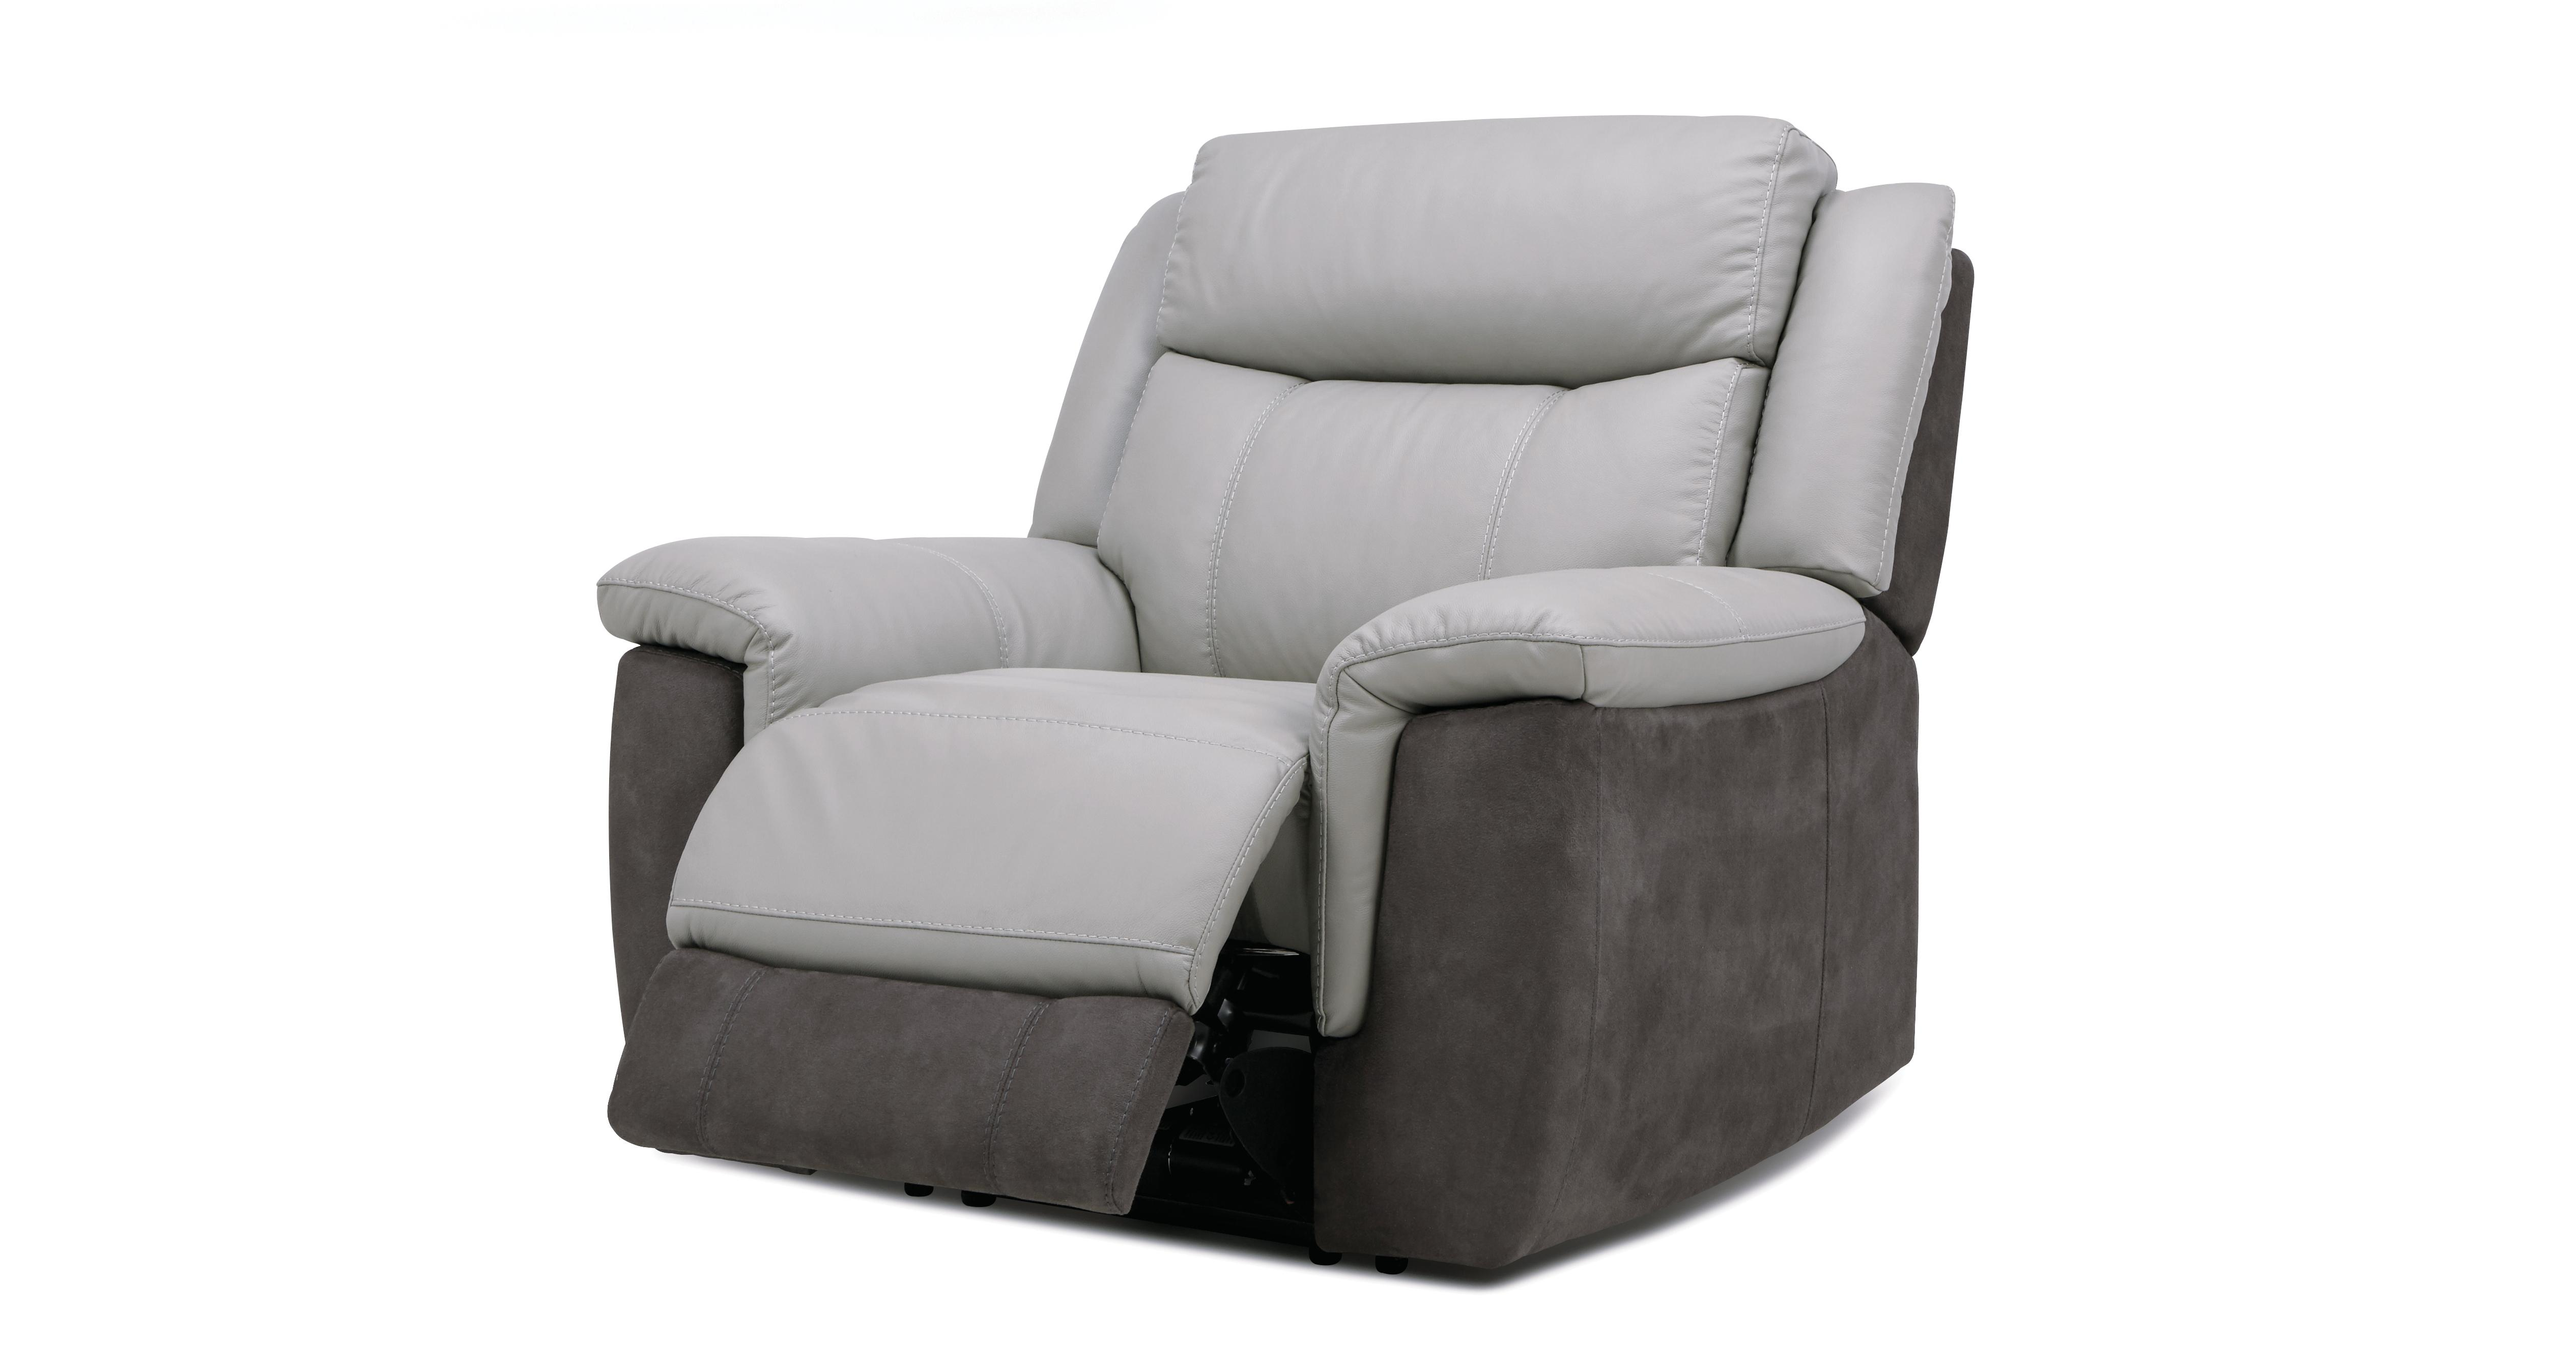 recliner chairs uk farmhouse style in a range of styles for your home dfs half price dinsdale power plus chair bacio vellutato